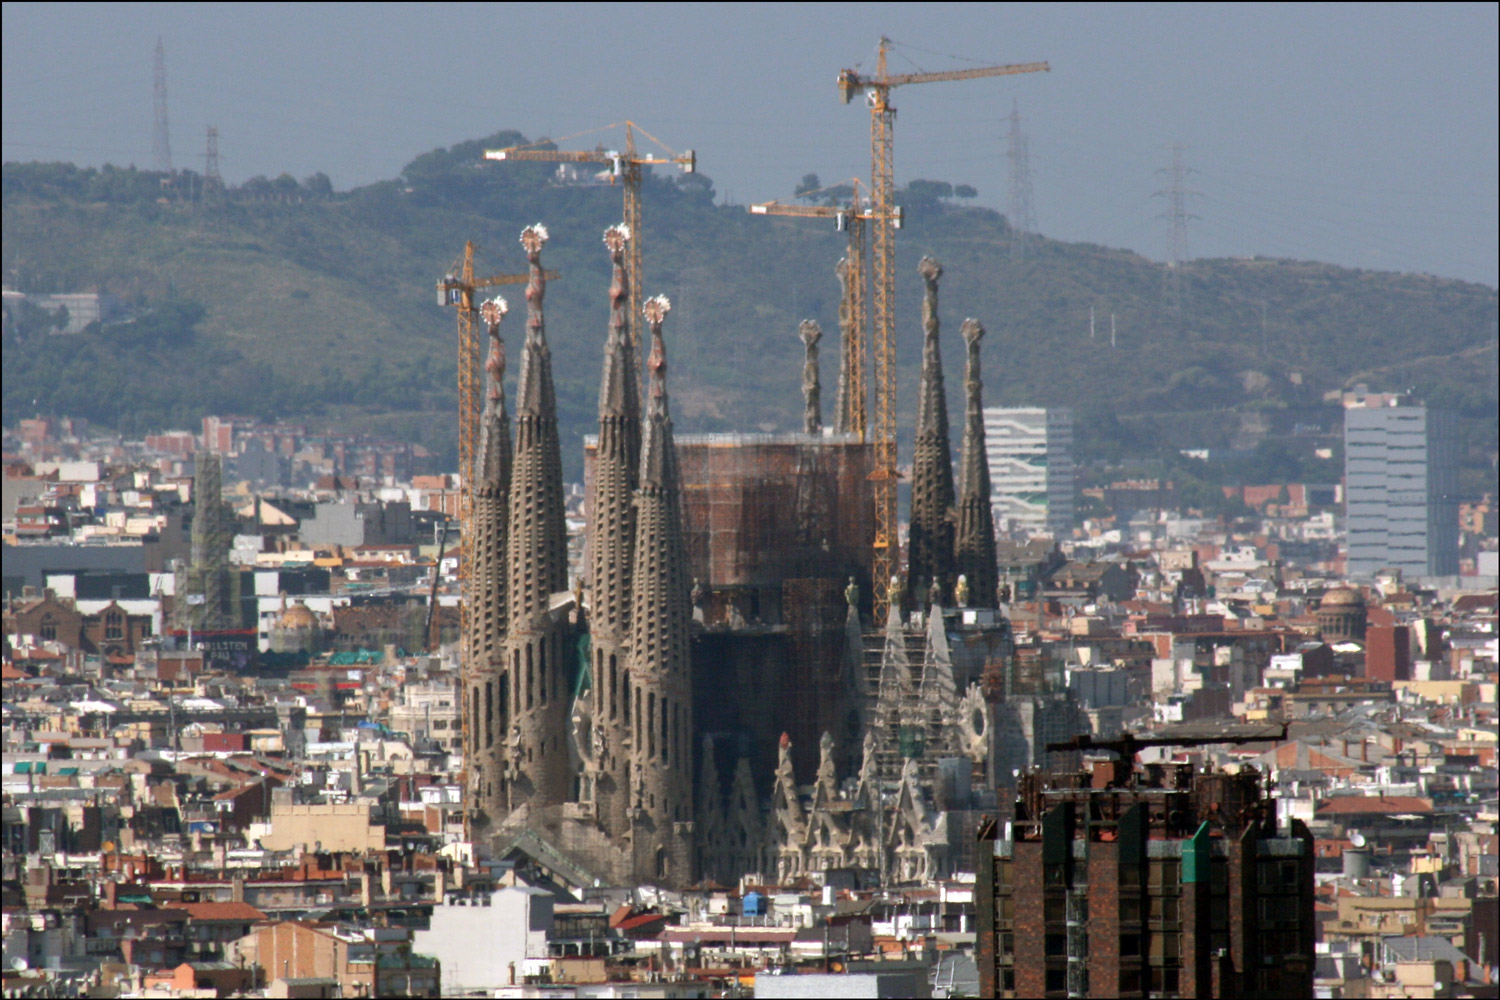 La Sagrada Familia from a Distance